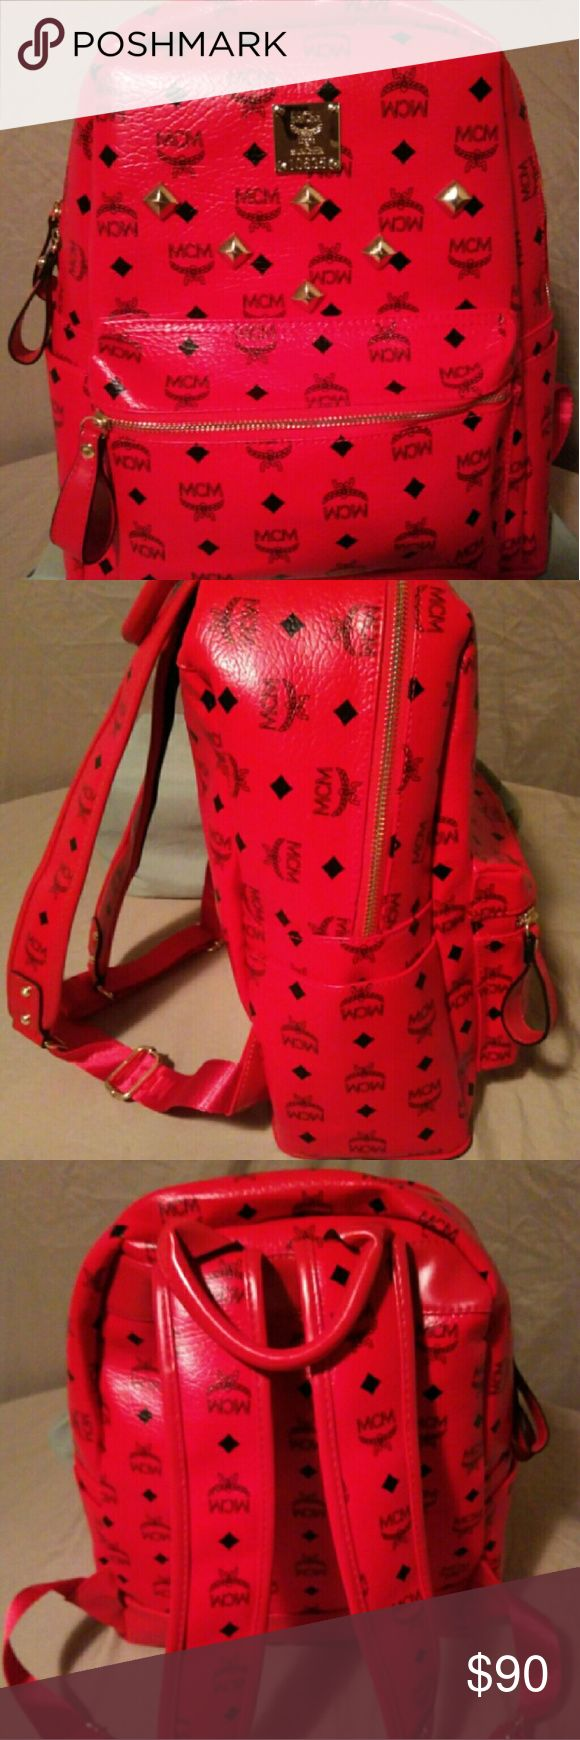 Red MCM Backpack Pre-owned Red MCM Backpack. Size Medium. Backpack is in great condition. MCM Bags Backpacks